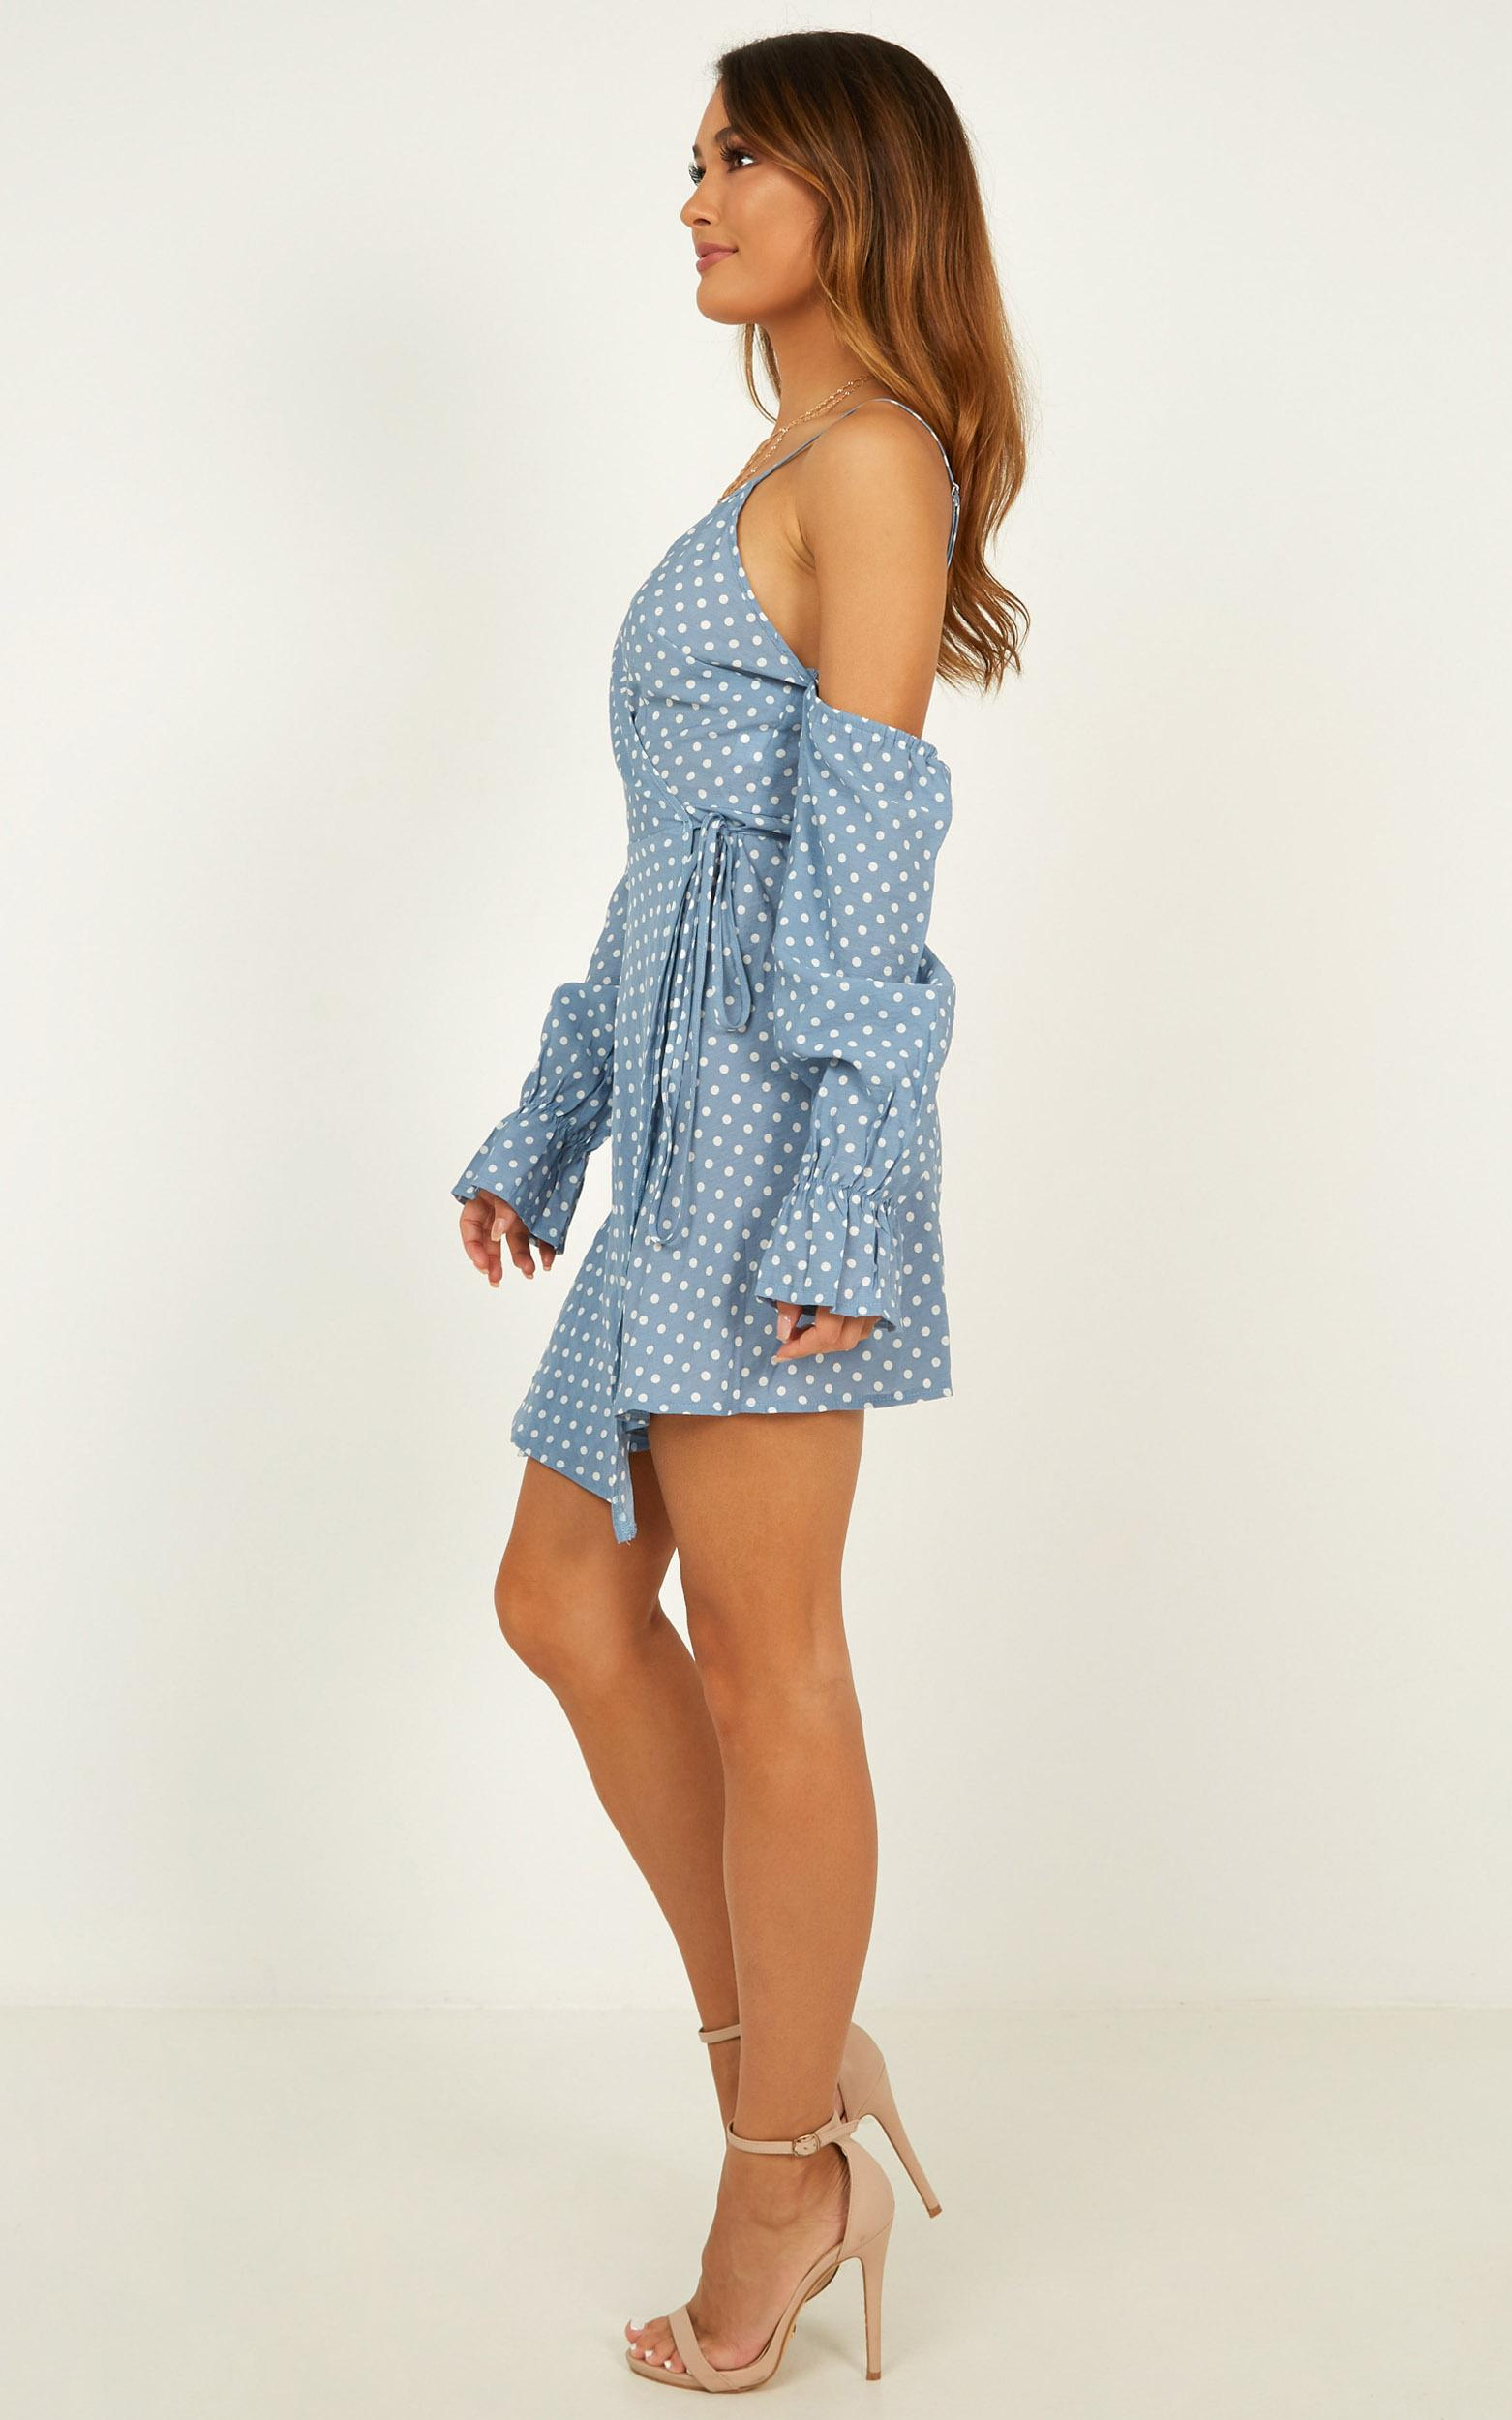 Be Your Lover Dress In blue spot - 20 (XXXXL), Blue, hi-res image number null